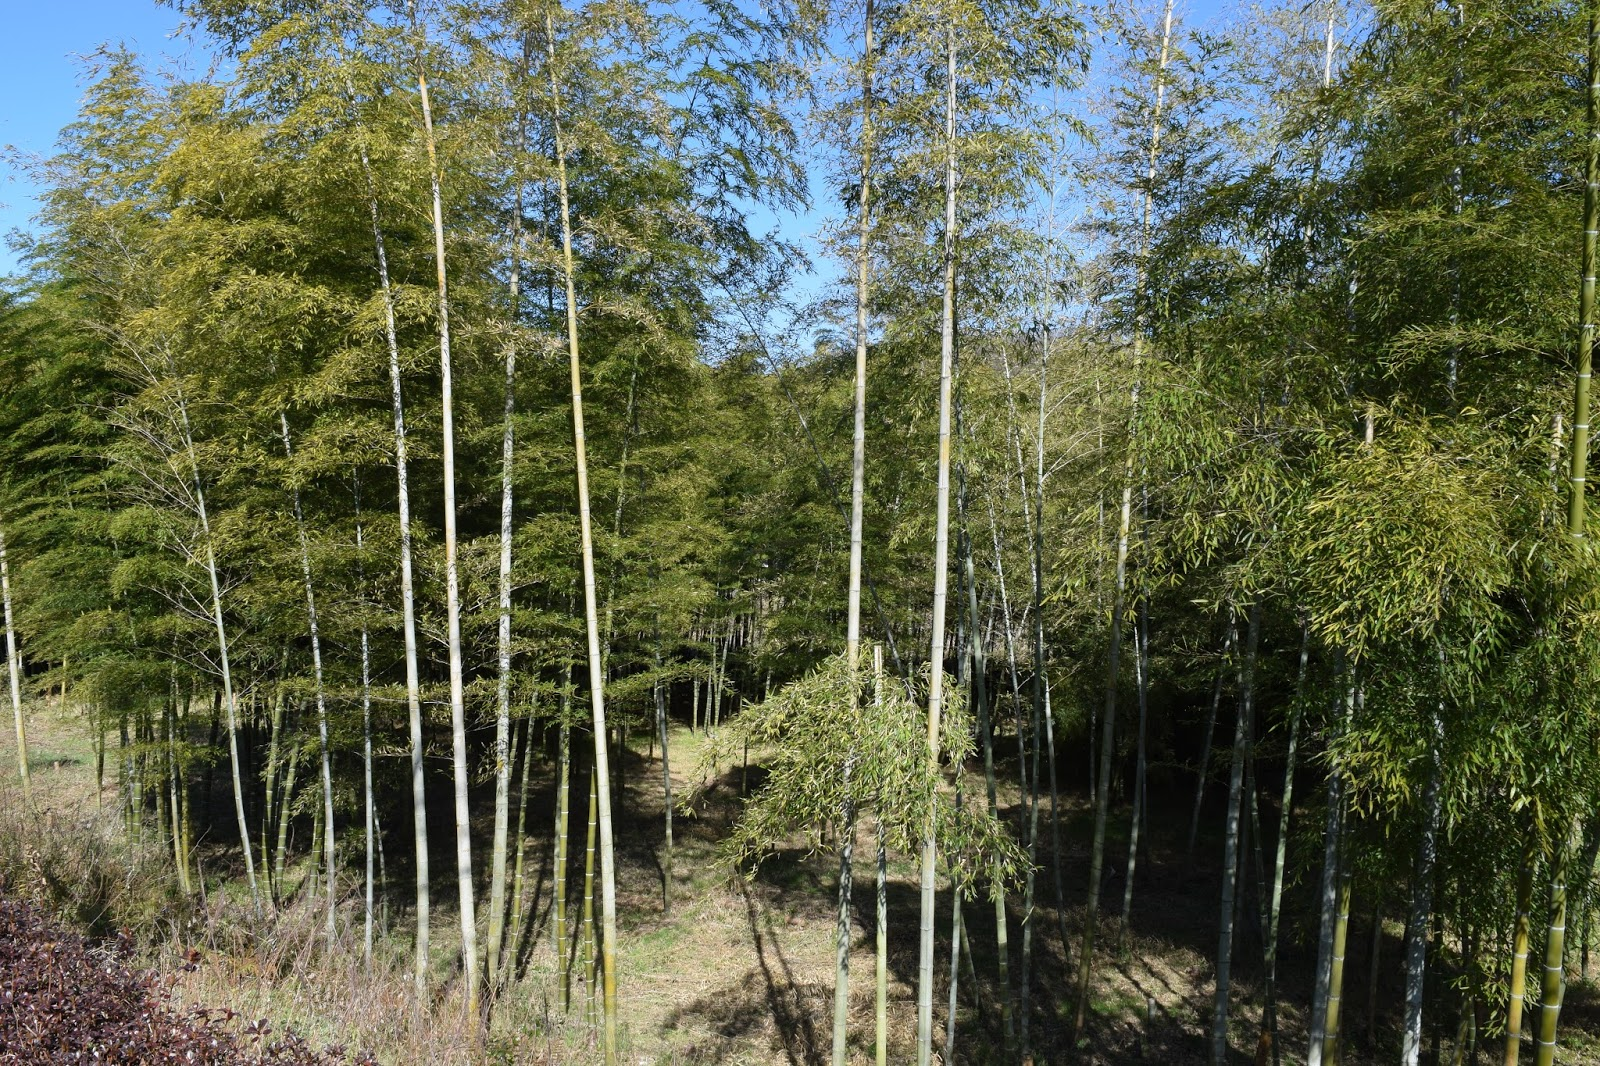 bamboo grove in Iwakuni